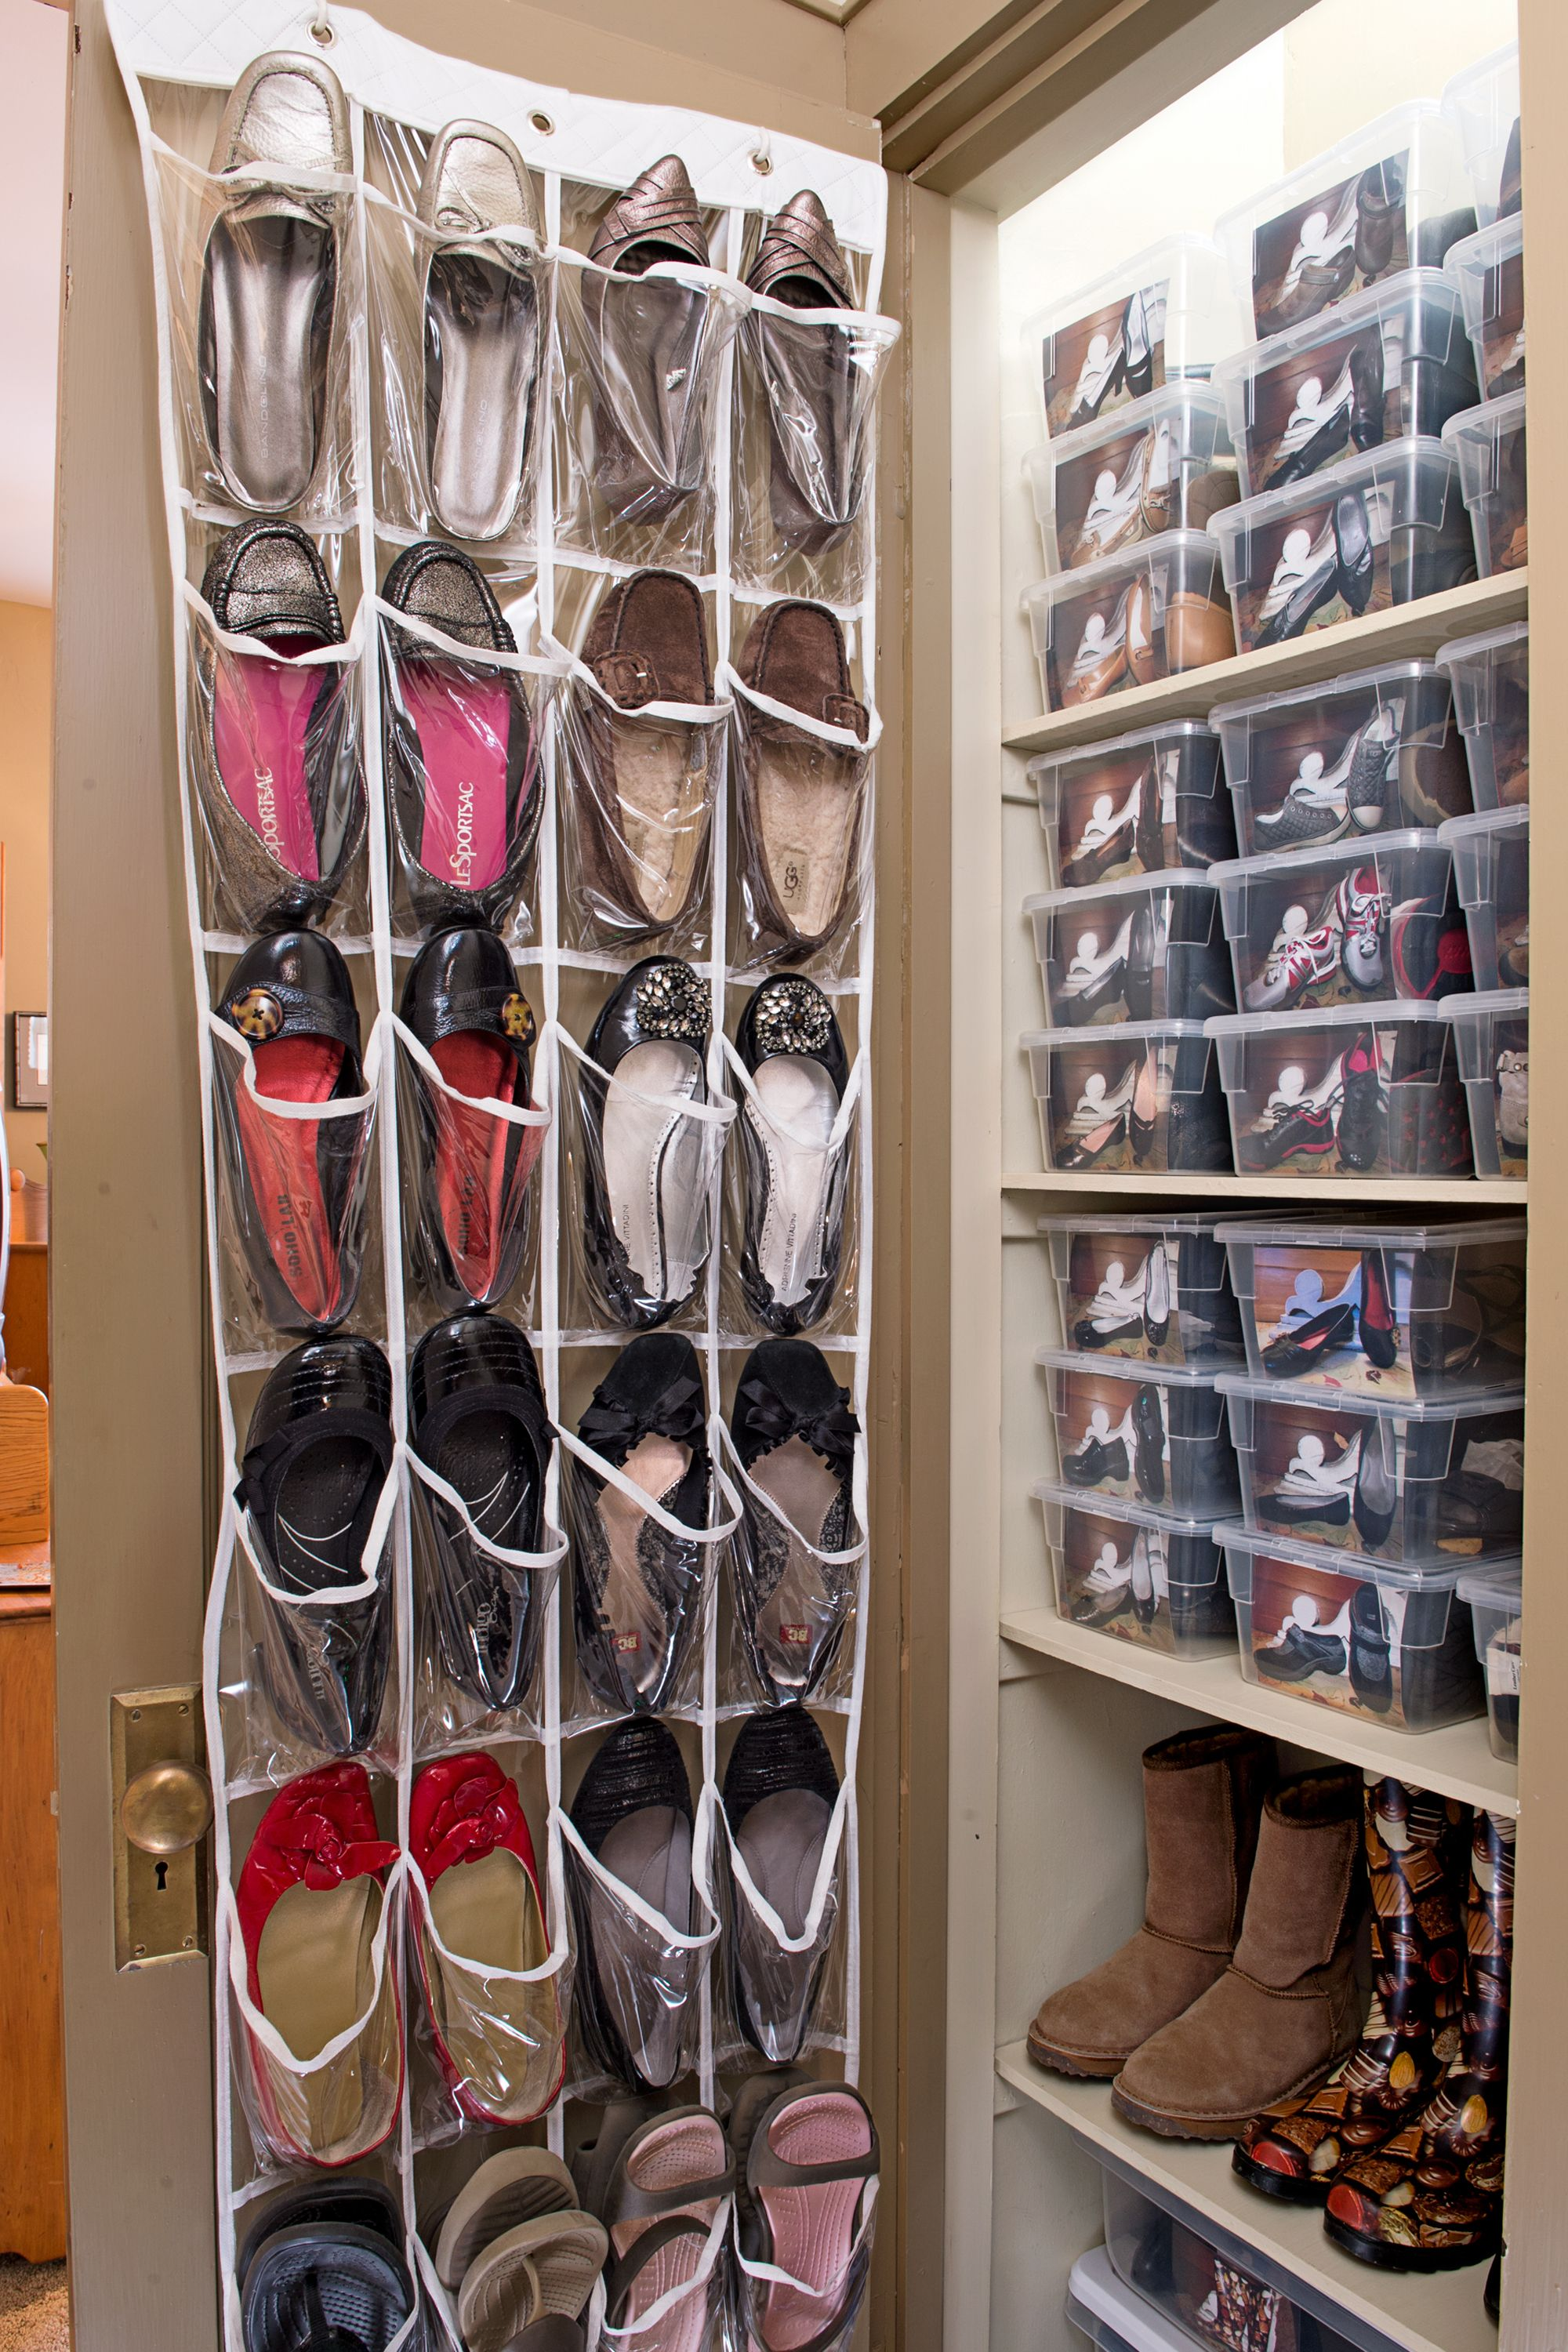 Charmant 24 Best Closet Organization U0026 Storage Ideas   How To Organize Your Closet    WomansDay.com